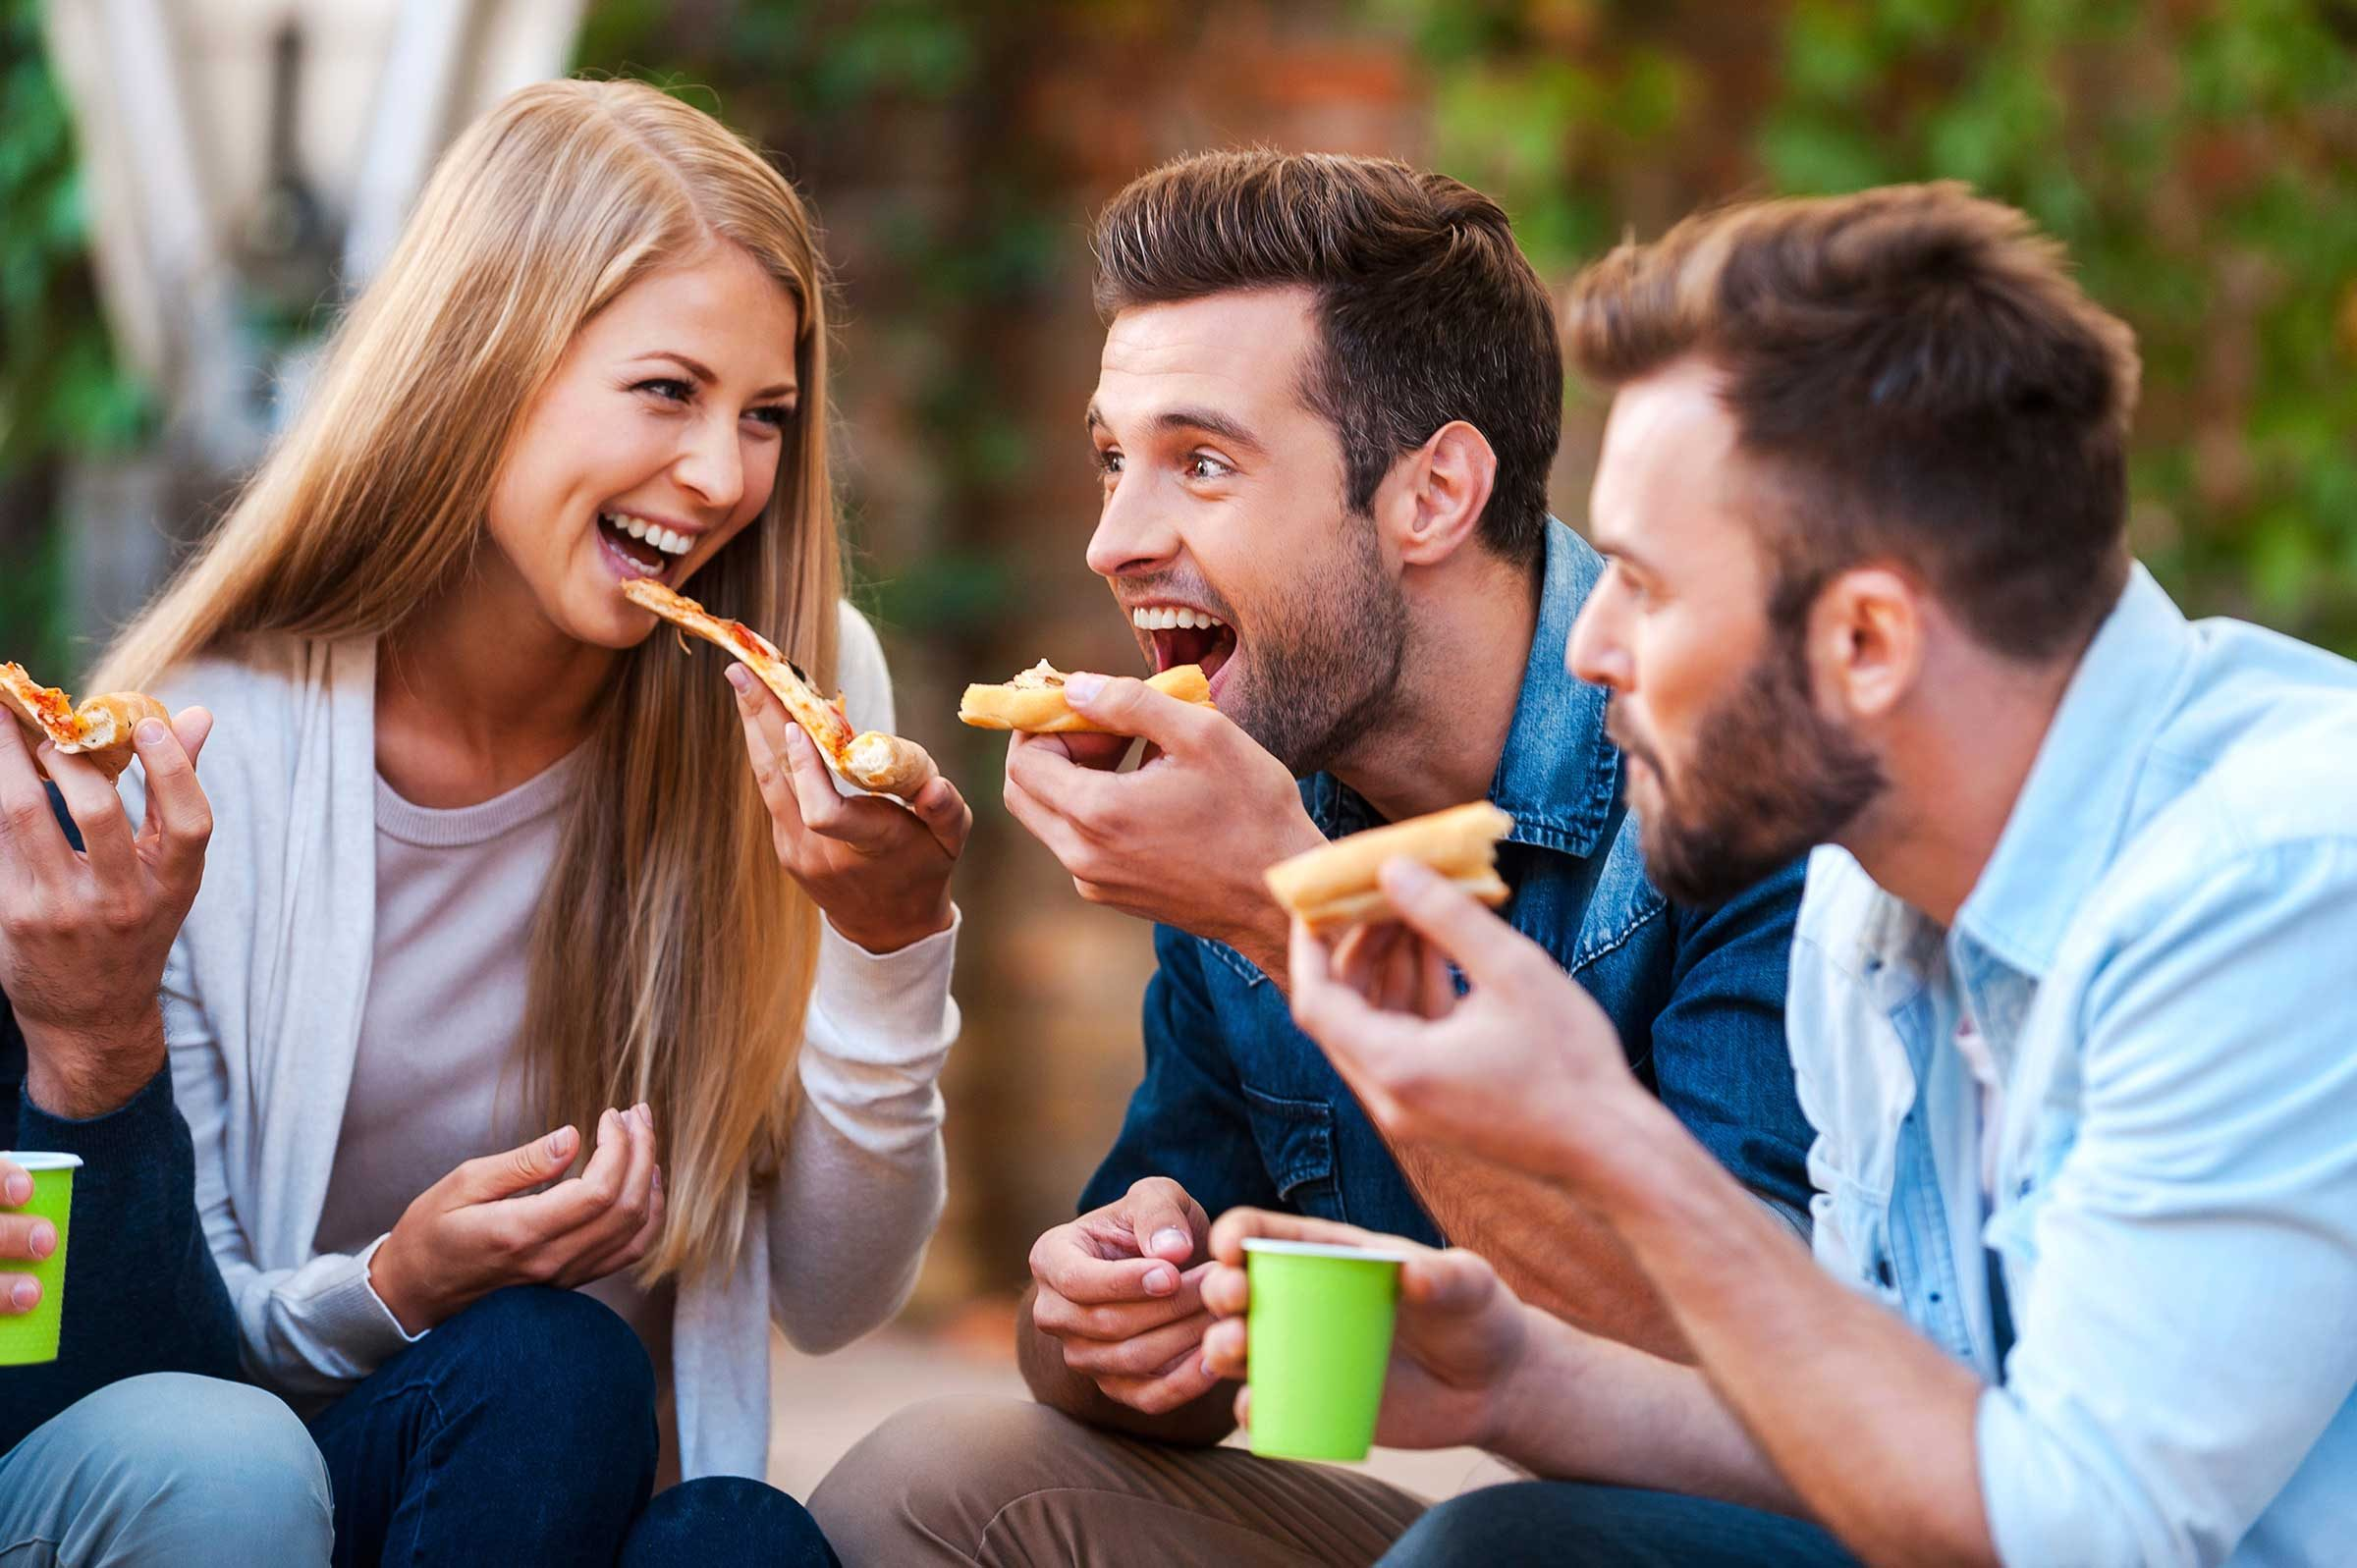 Young People Eating Junk Food